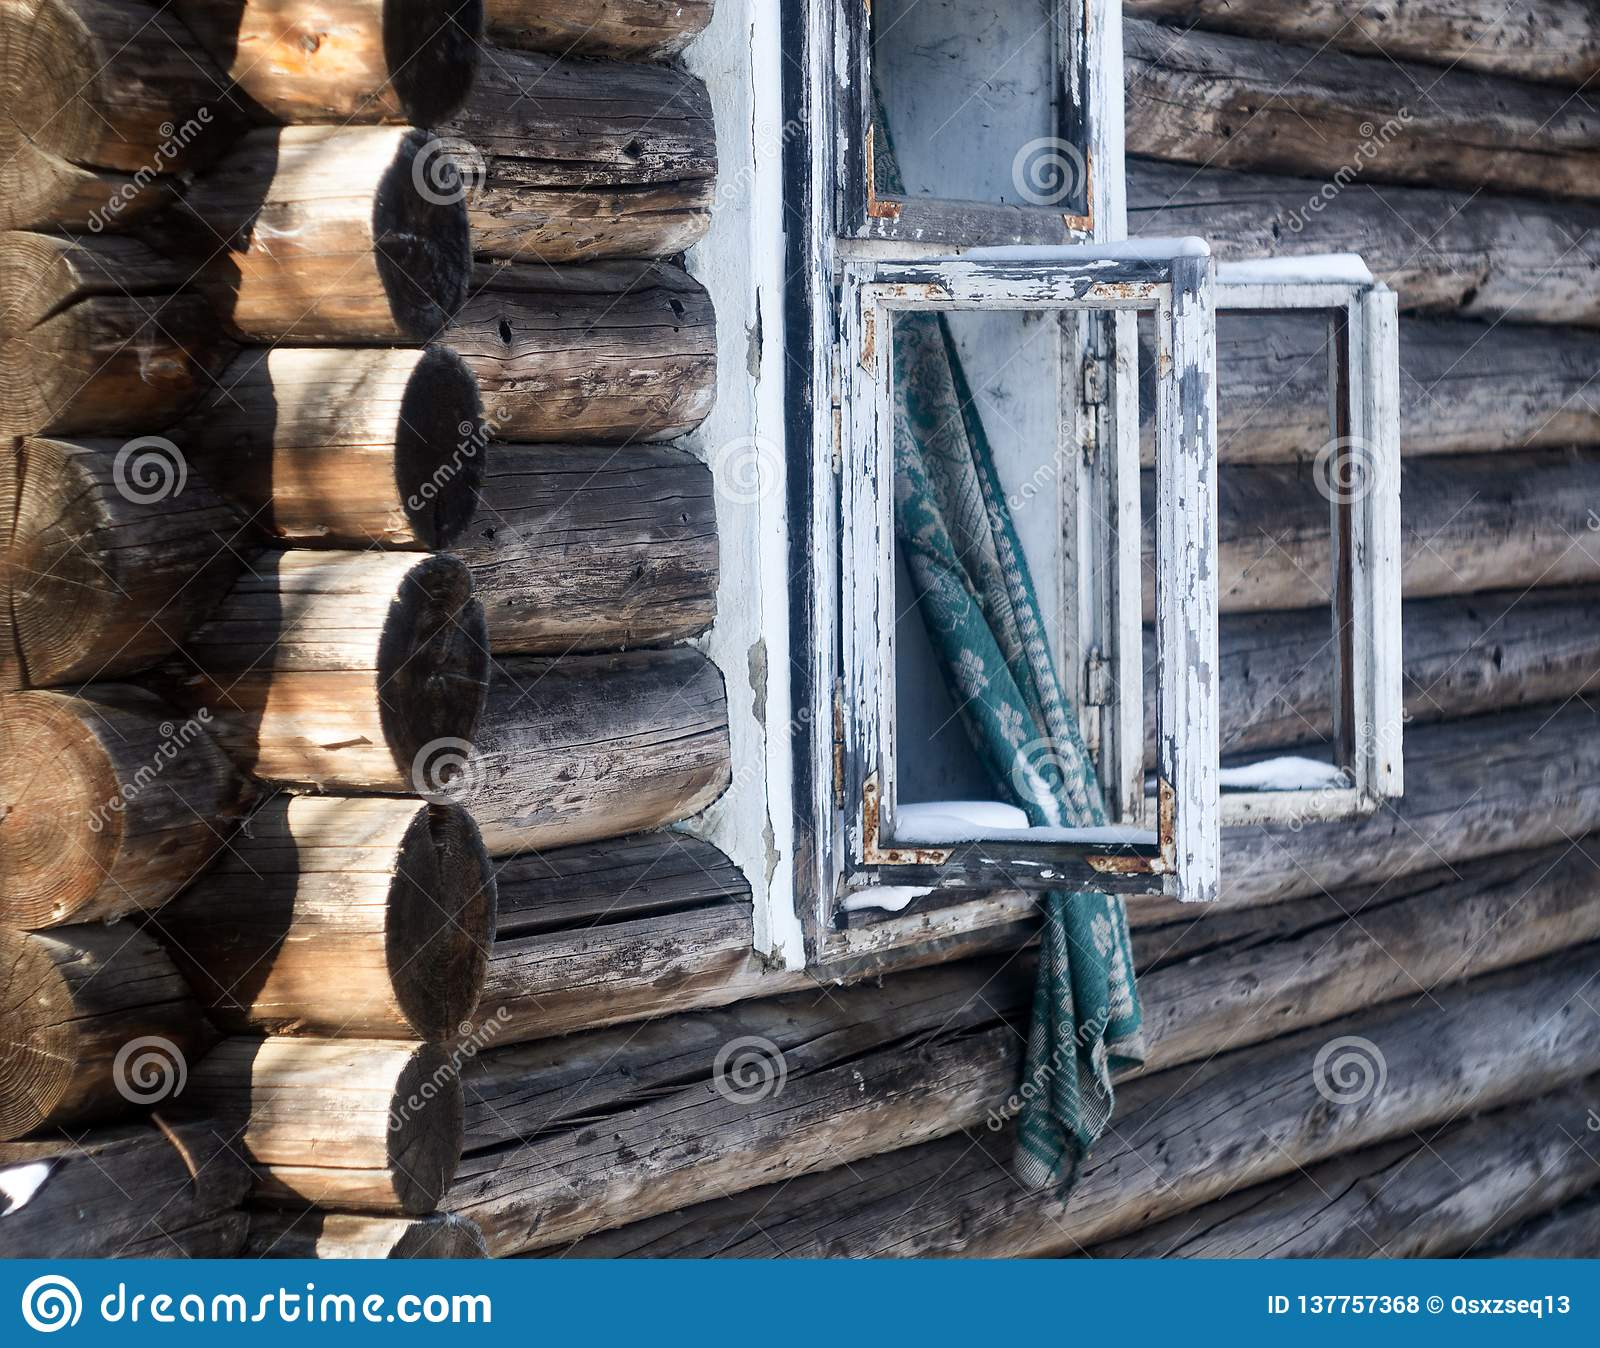 Photo Of A Burnt House In Winter  Charred Beams Of A Wooden House  Burned Down House Stock Photo